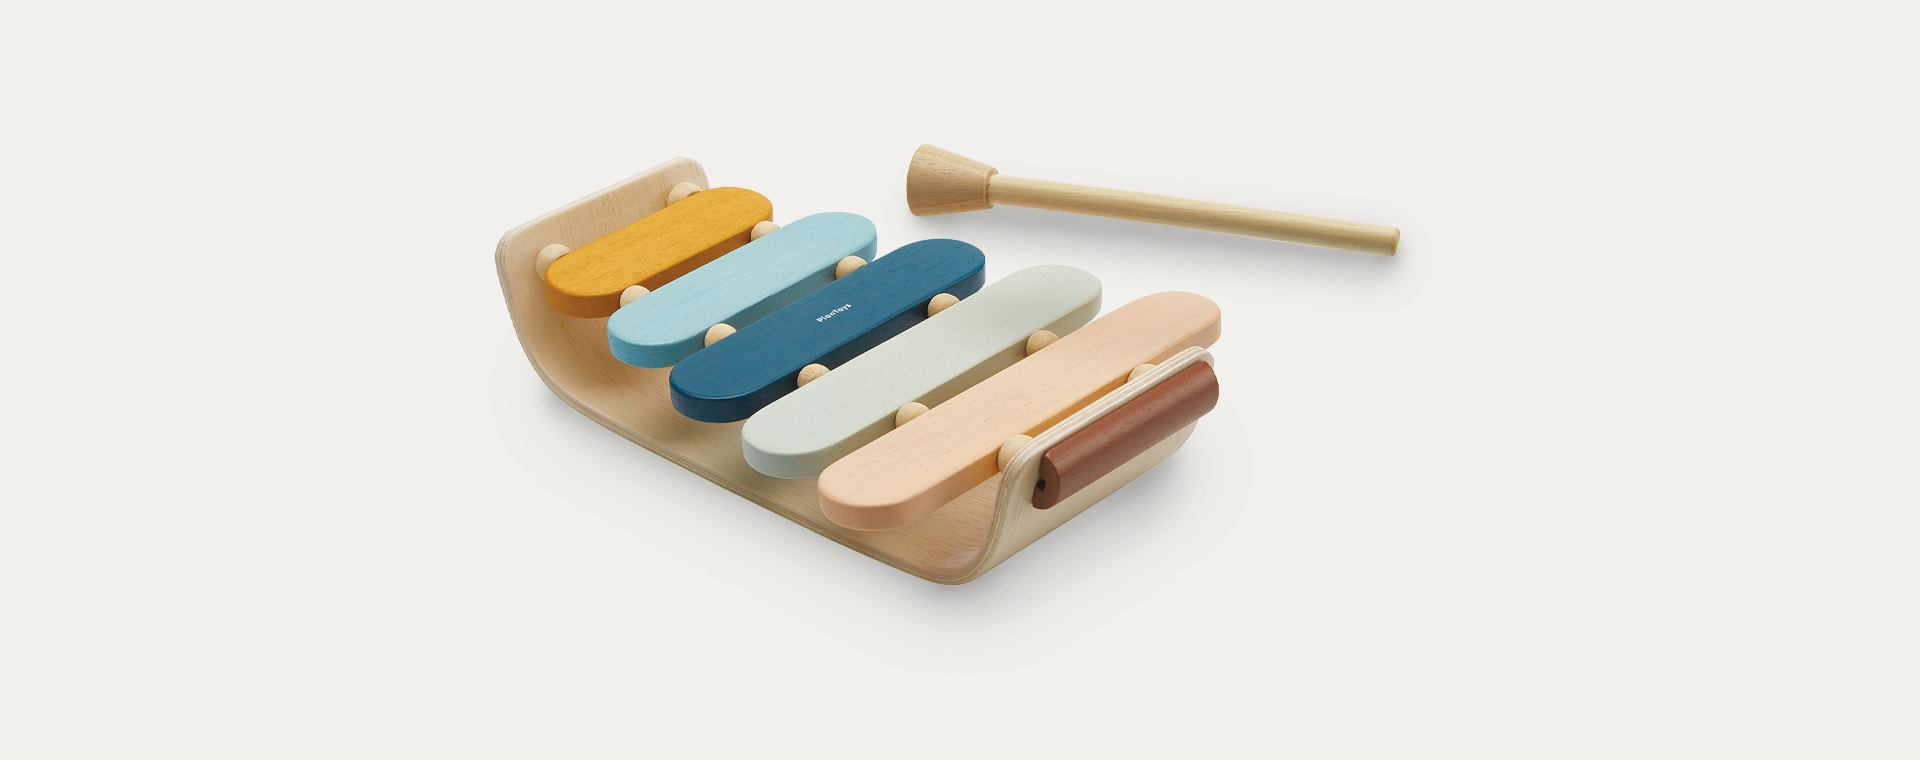 Orchard Plan Toys Oval Xylophone